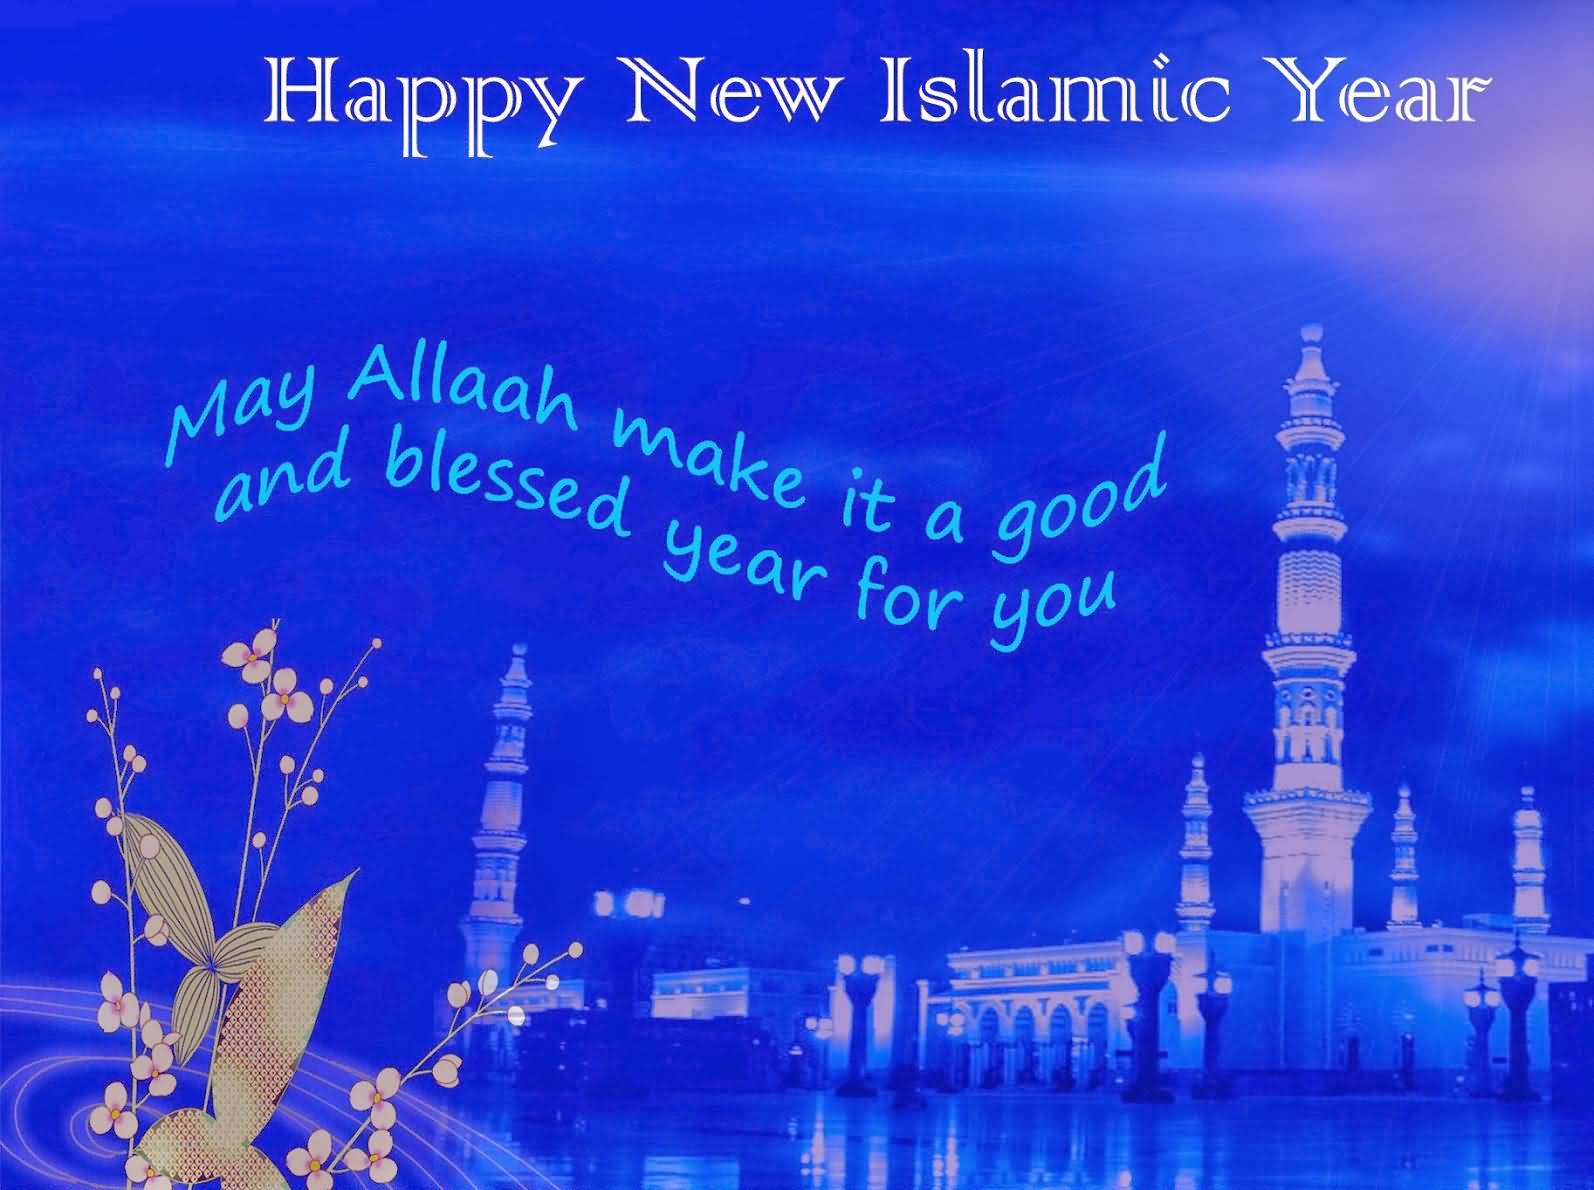 Captivating Happy New Islamic Year Muharram May Allah Make It A Good And Blessed Year  For You